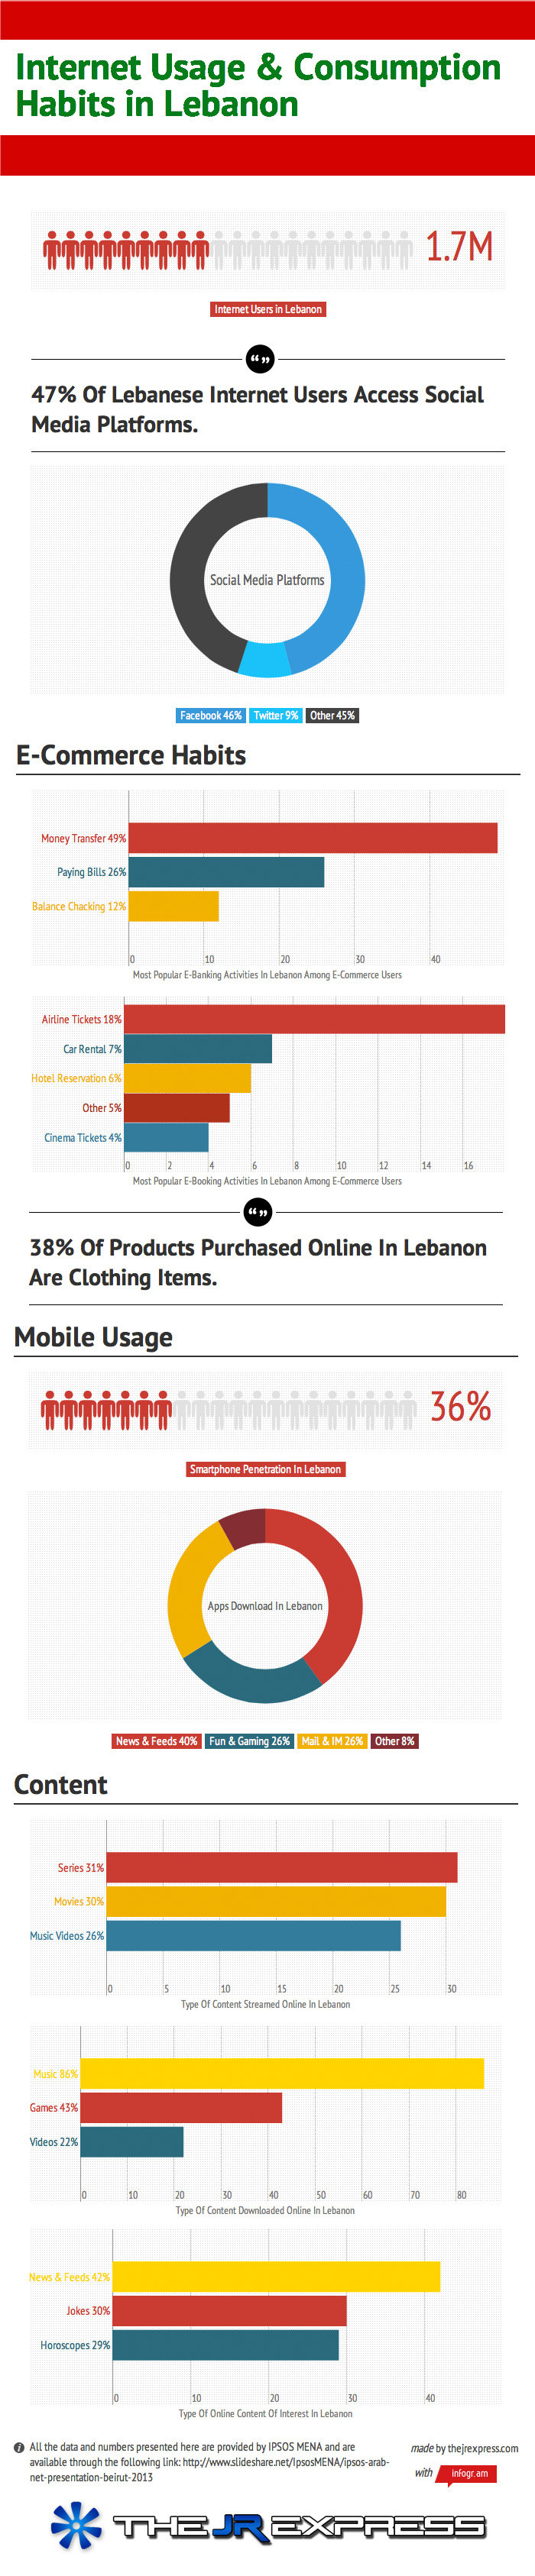 Internet Usage & Consumption Habits In Lebanon